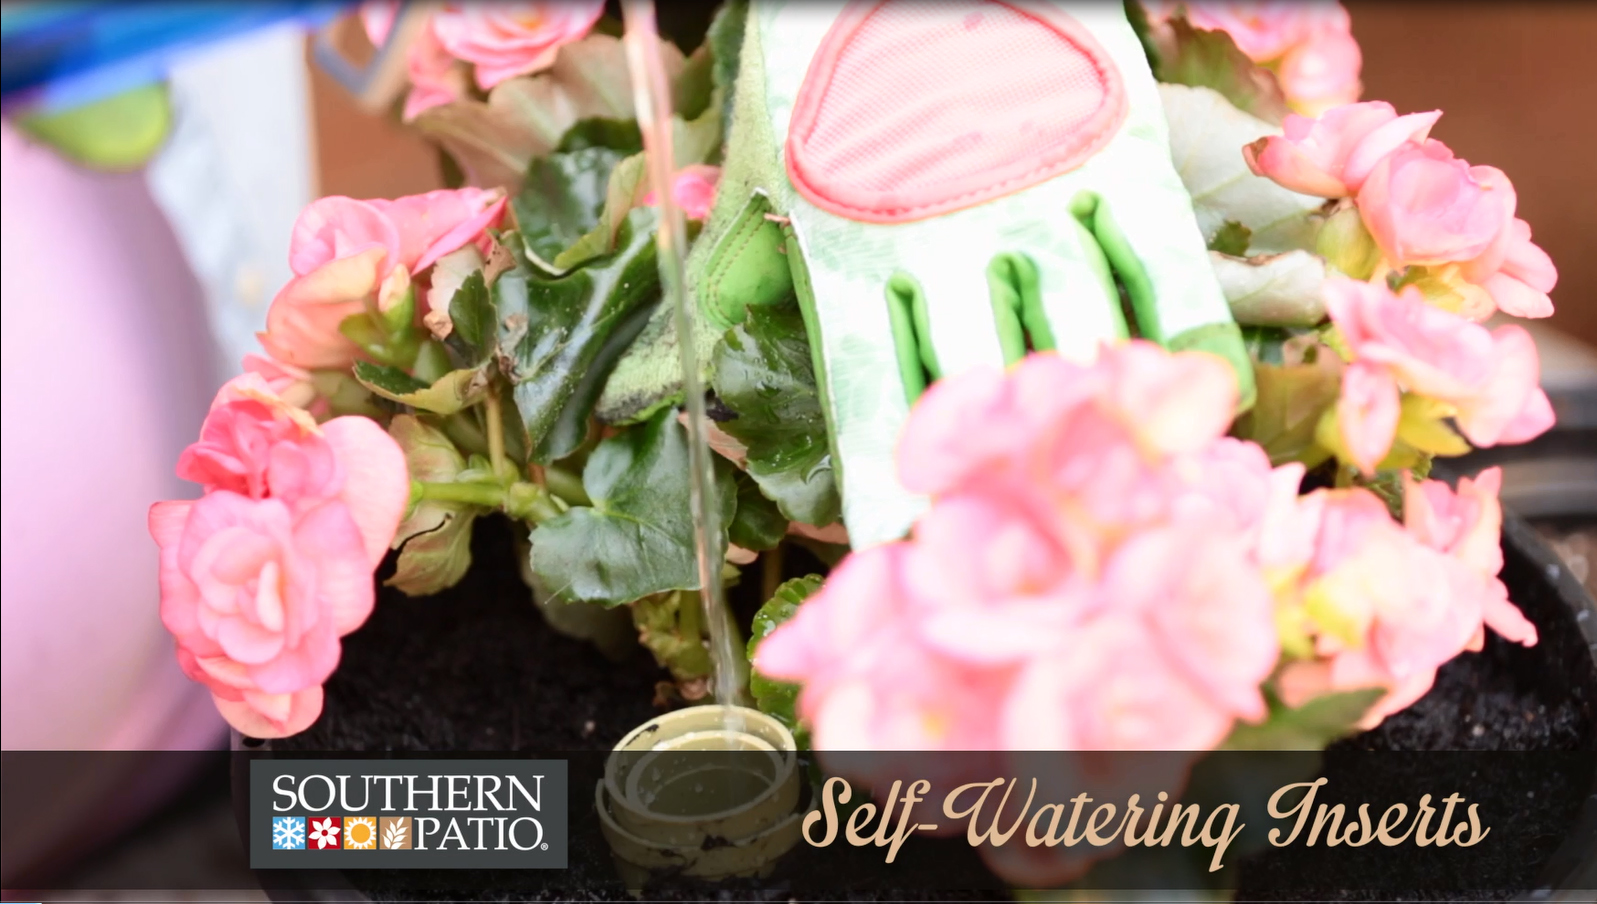 Decorative Watering Cans Video How To Use A Self Watering Insert Southern Patio